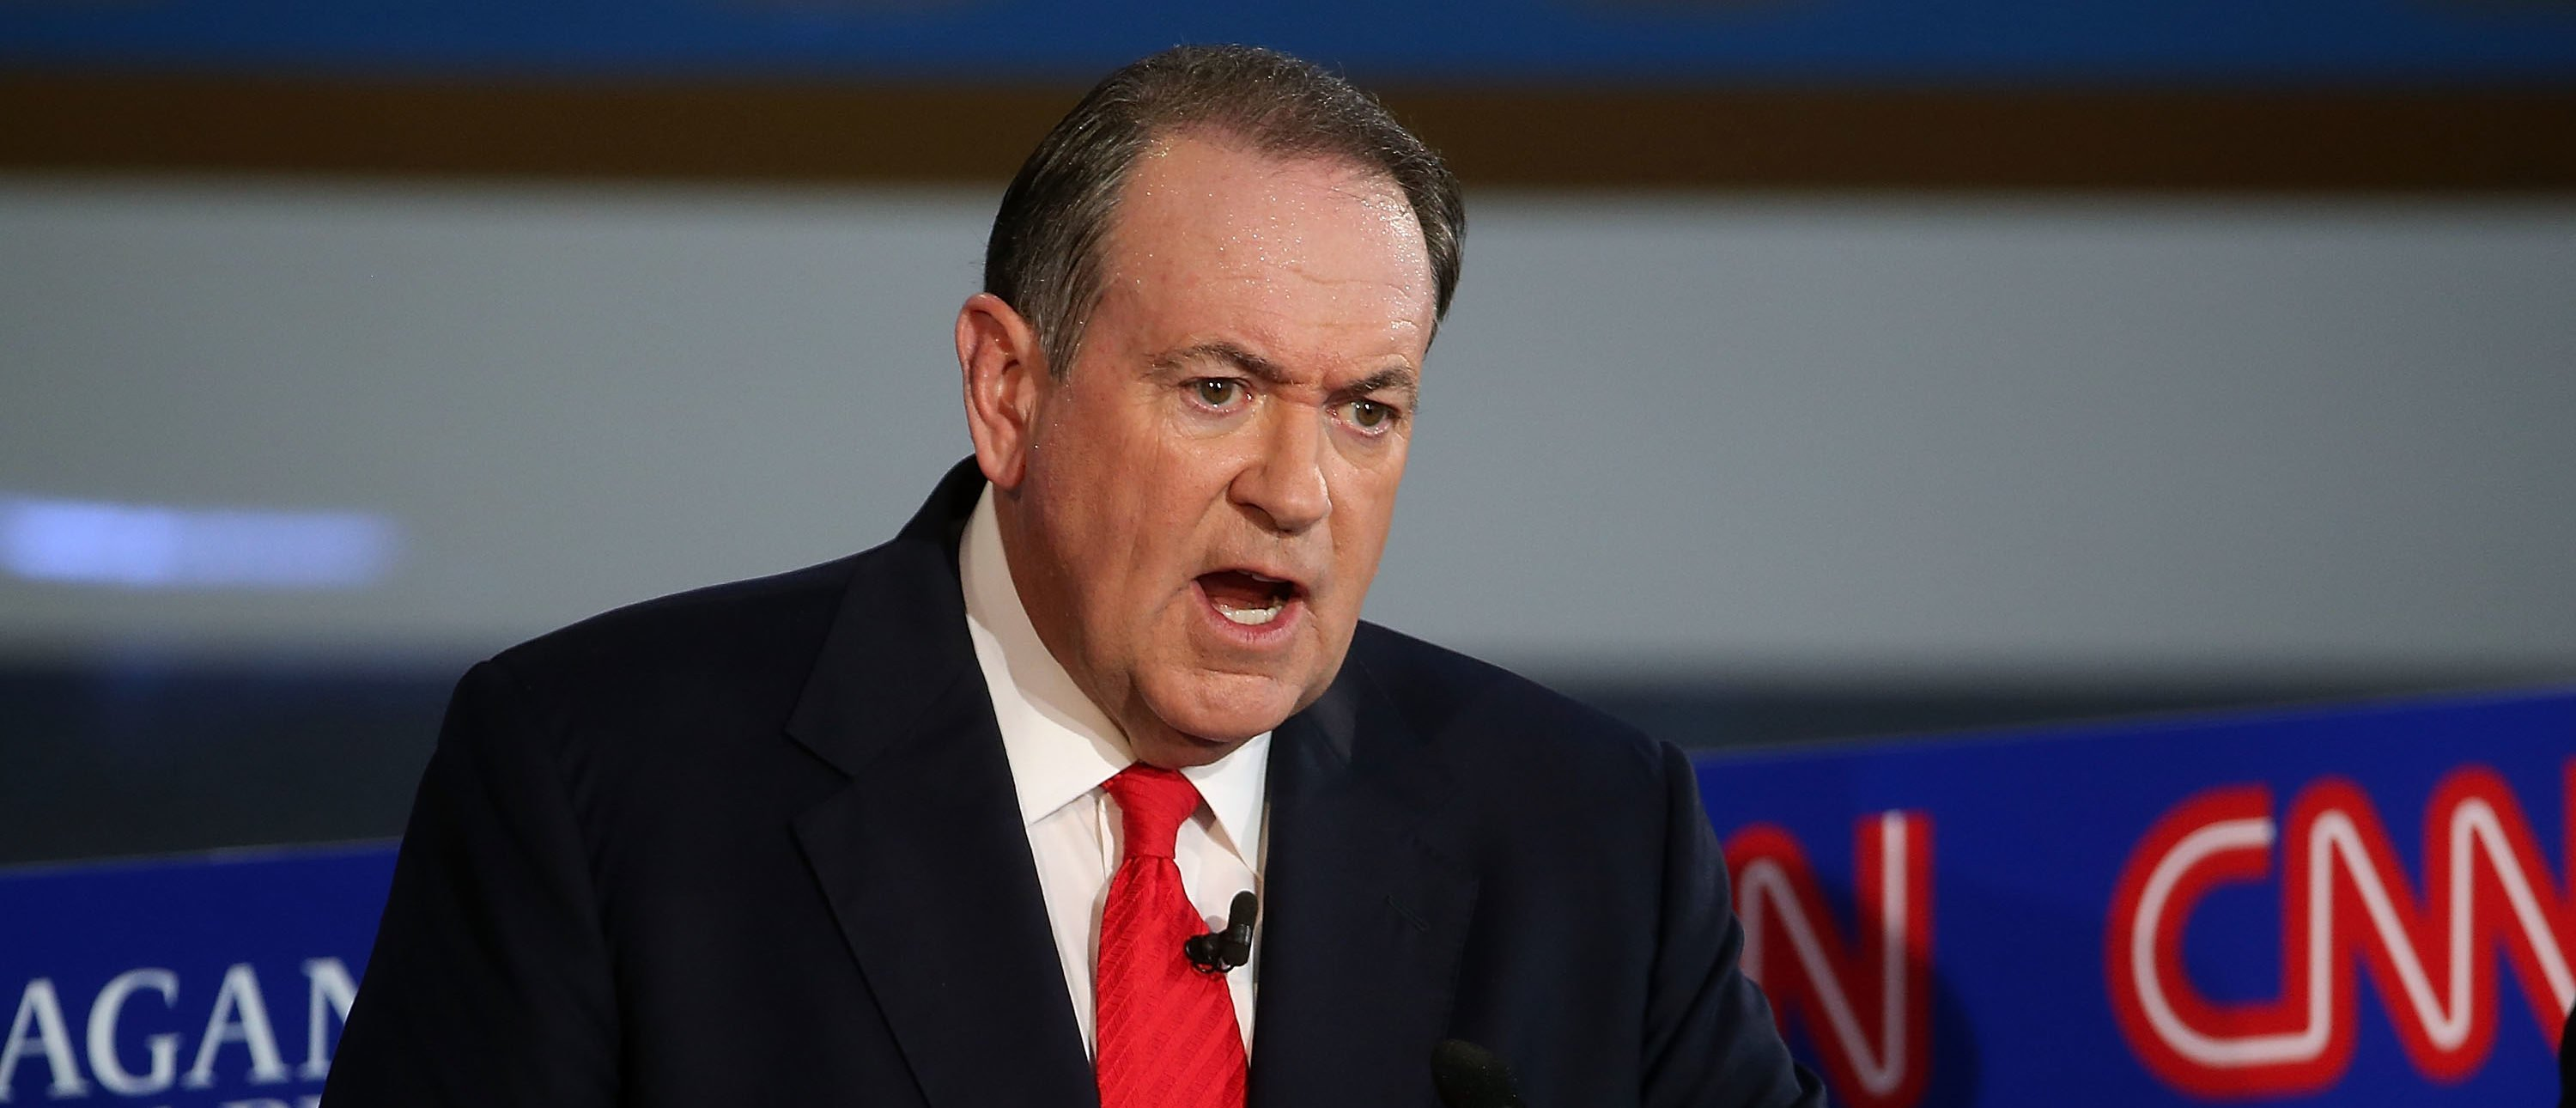 Republican Candidates Take Part In Debates At Reagan Library In Simi Valley Former governor and presidential candidate Mike Huckabee made an interesting, and very controversial, point about sanctuary cities on Fox News Friday (Justin Sullivan/Getty Images)